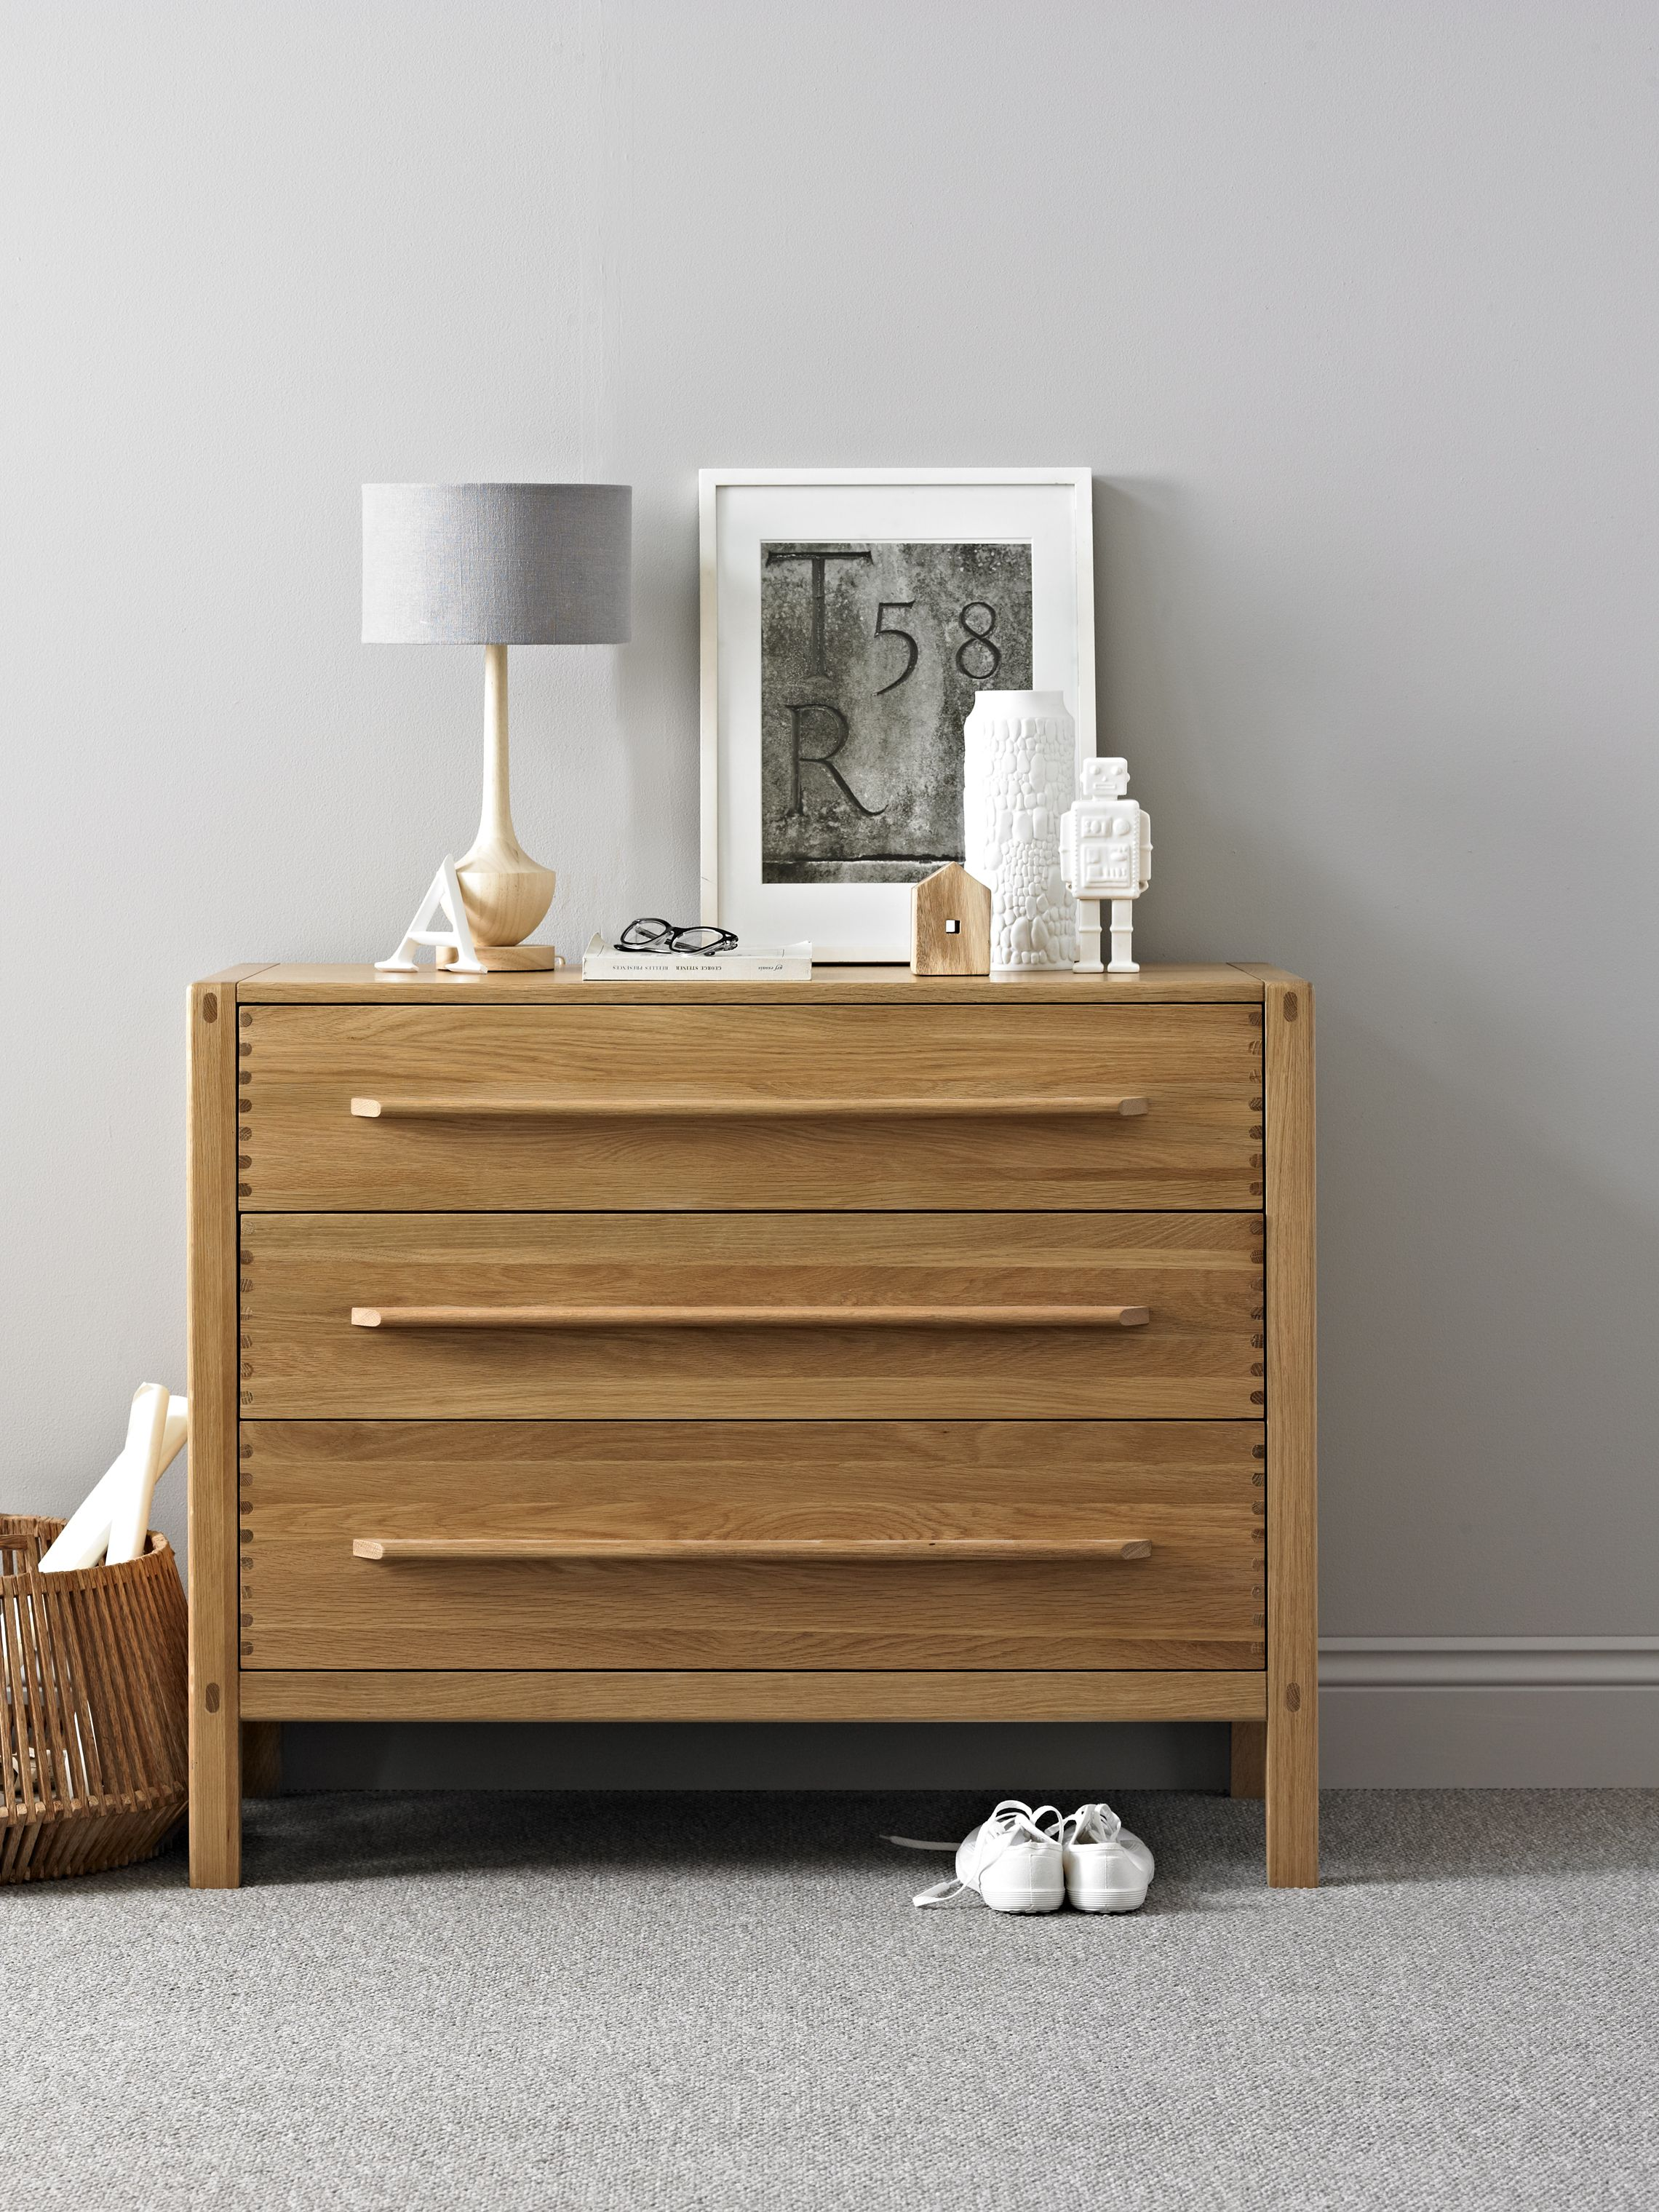 Simple bed furniture design - Ercol Pimlico 3 Drawer Chest Simple And Contemporary Bedroom Furniture Inspired By Mid Century Modern